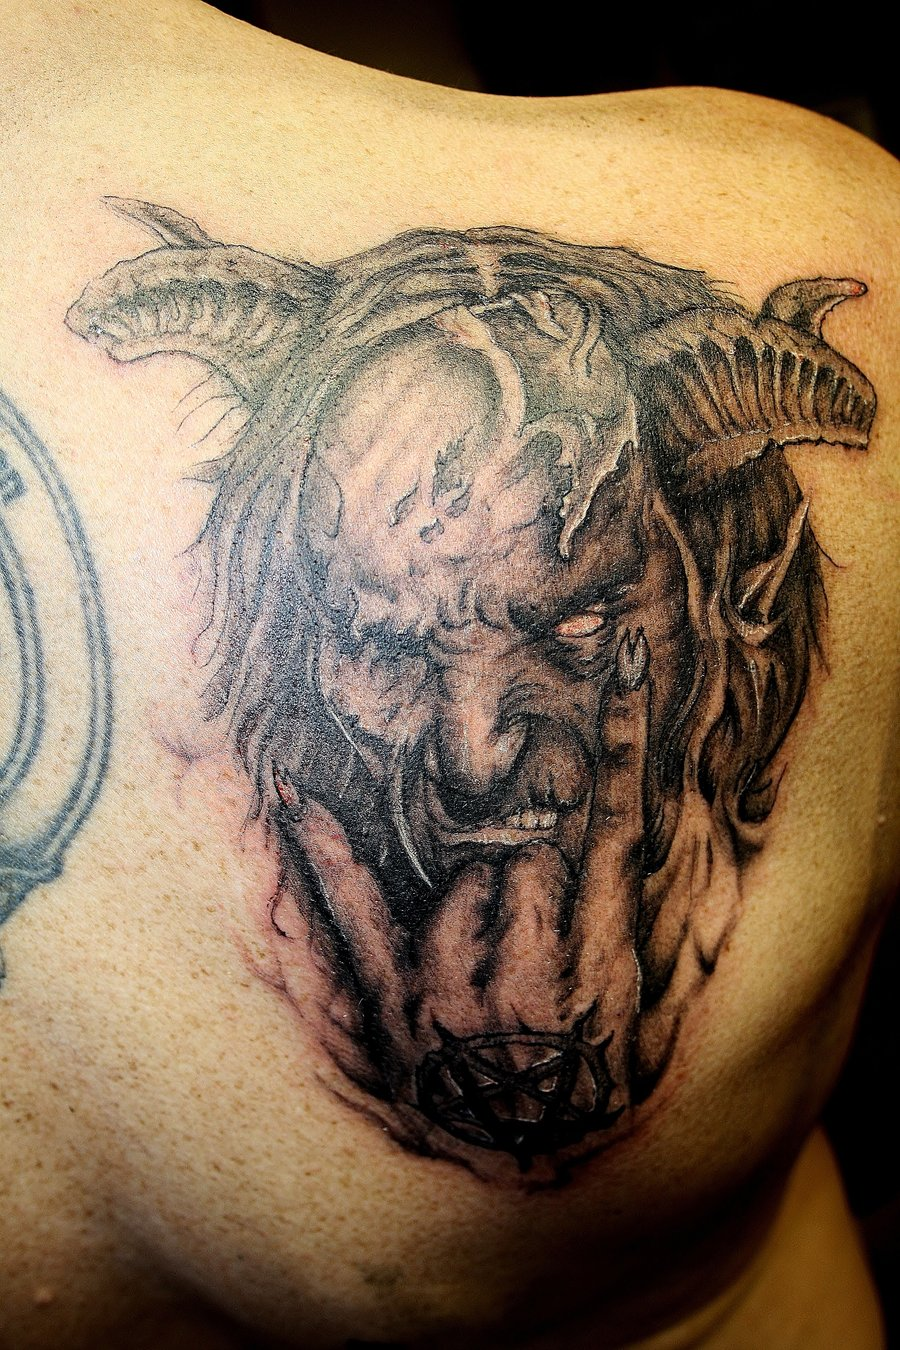 demon tattoo 7 - Demon Tattoos Design Ideas Pictures Gallery